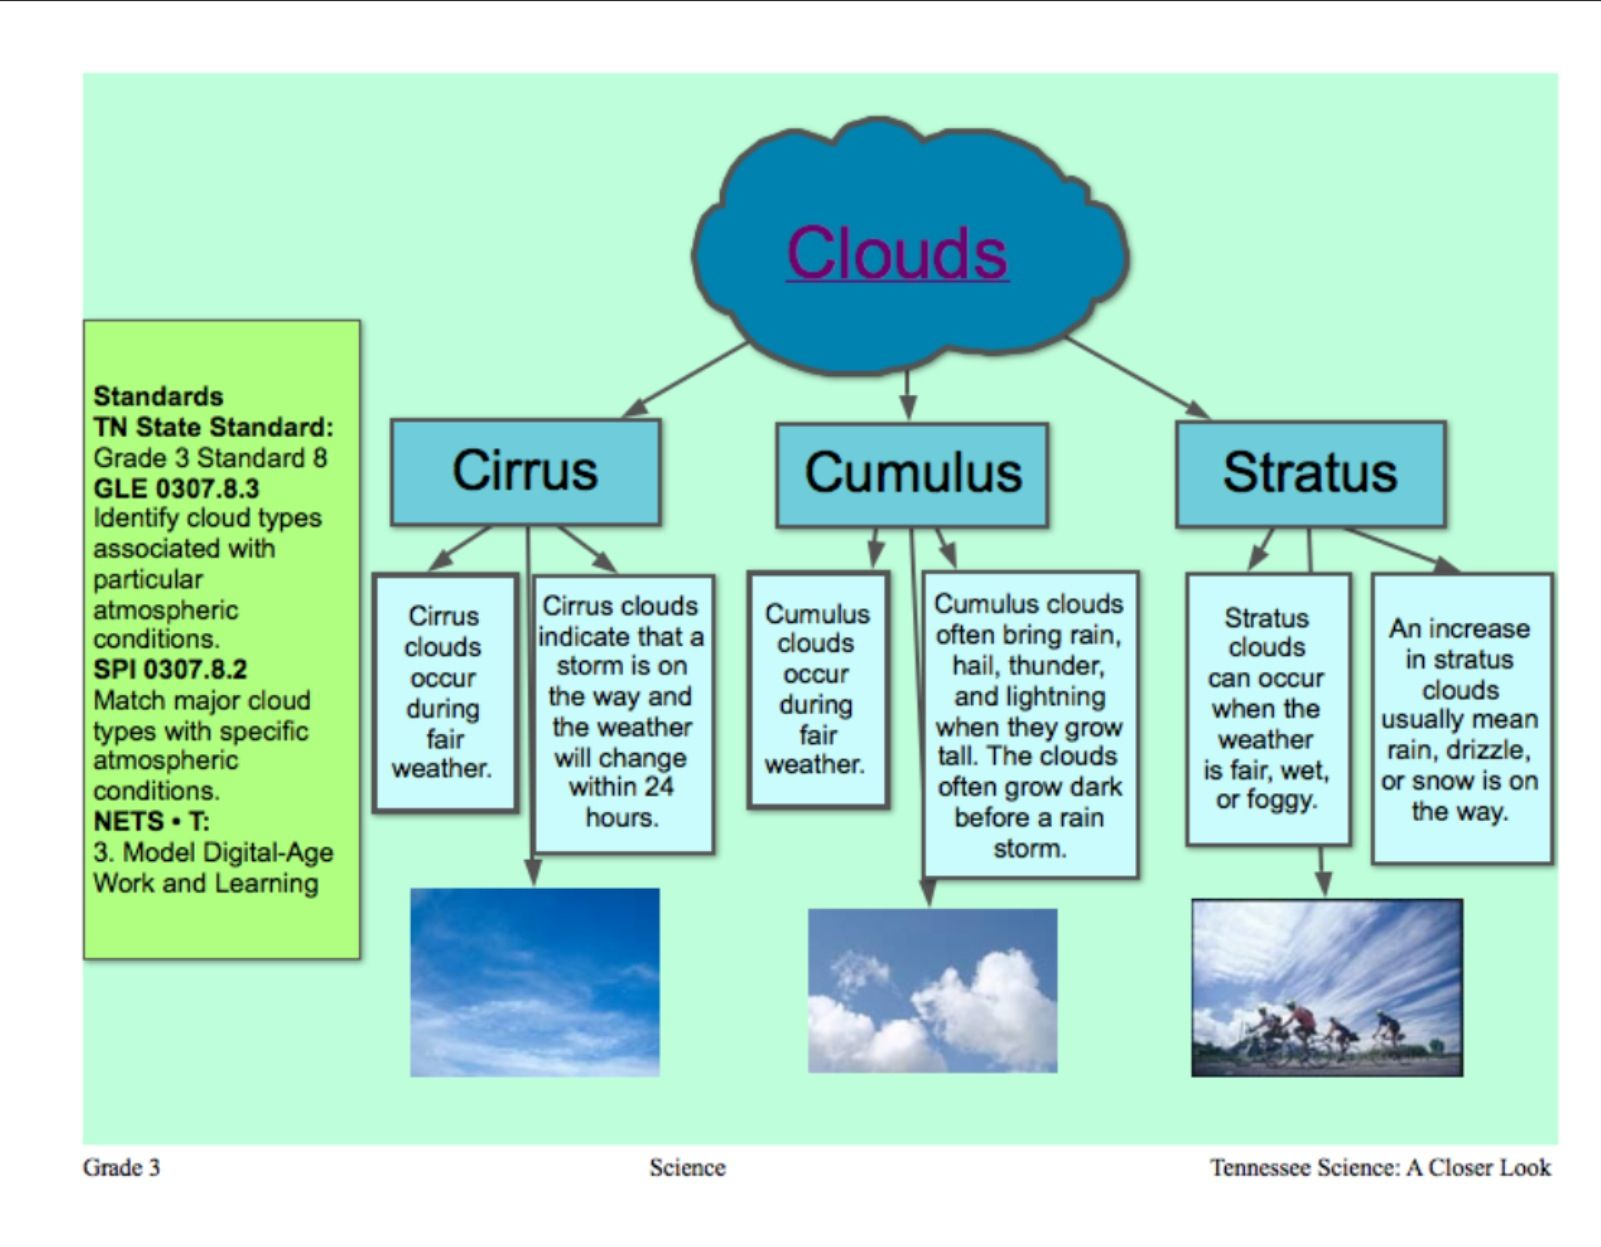 Cloud Types Tree Map